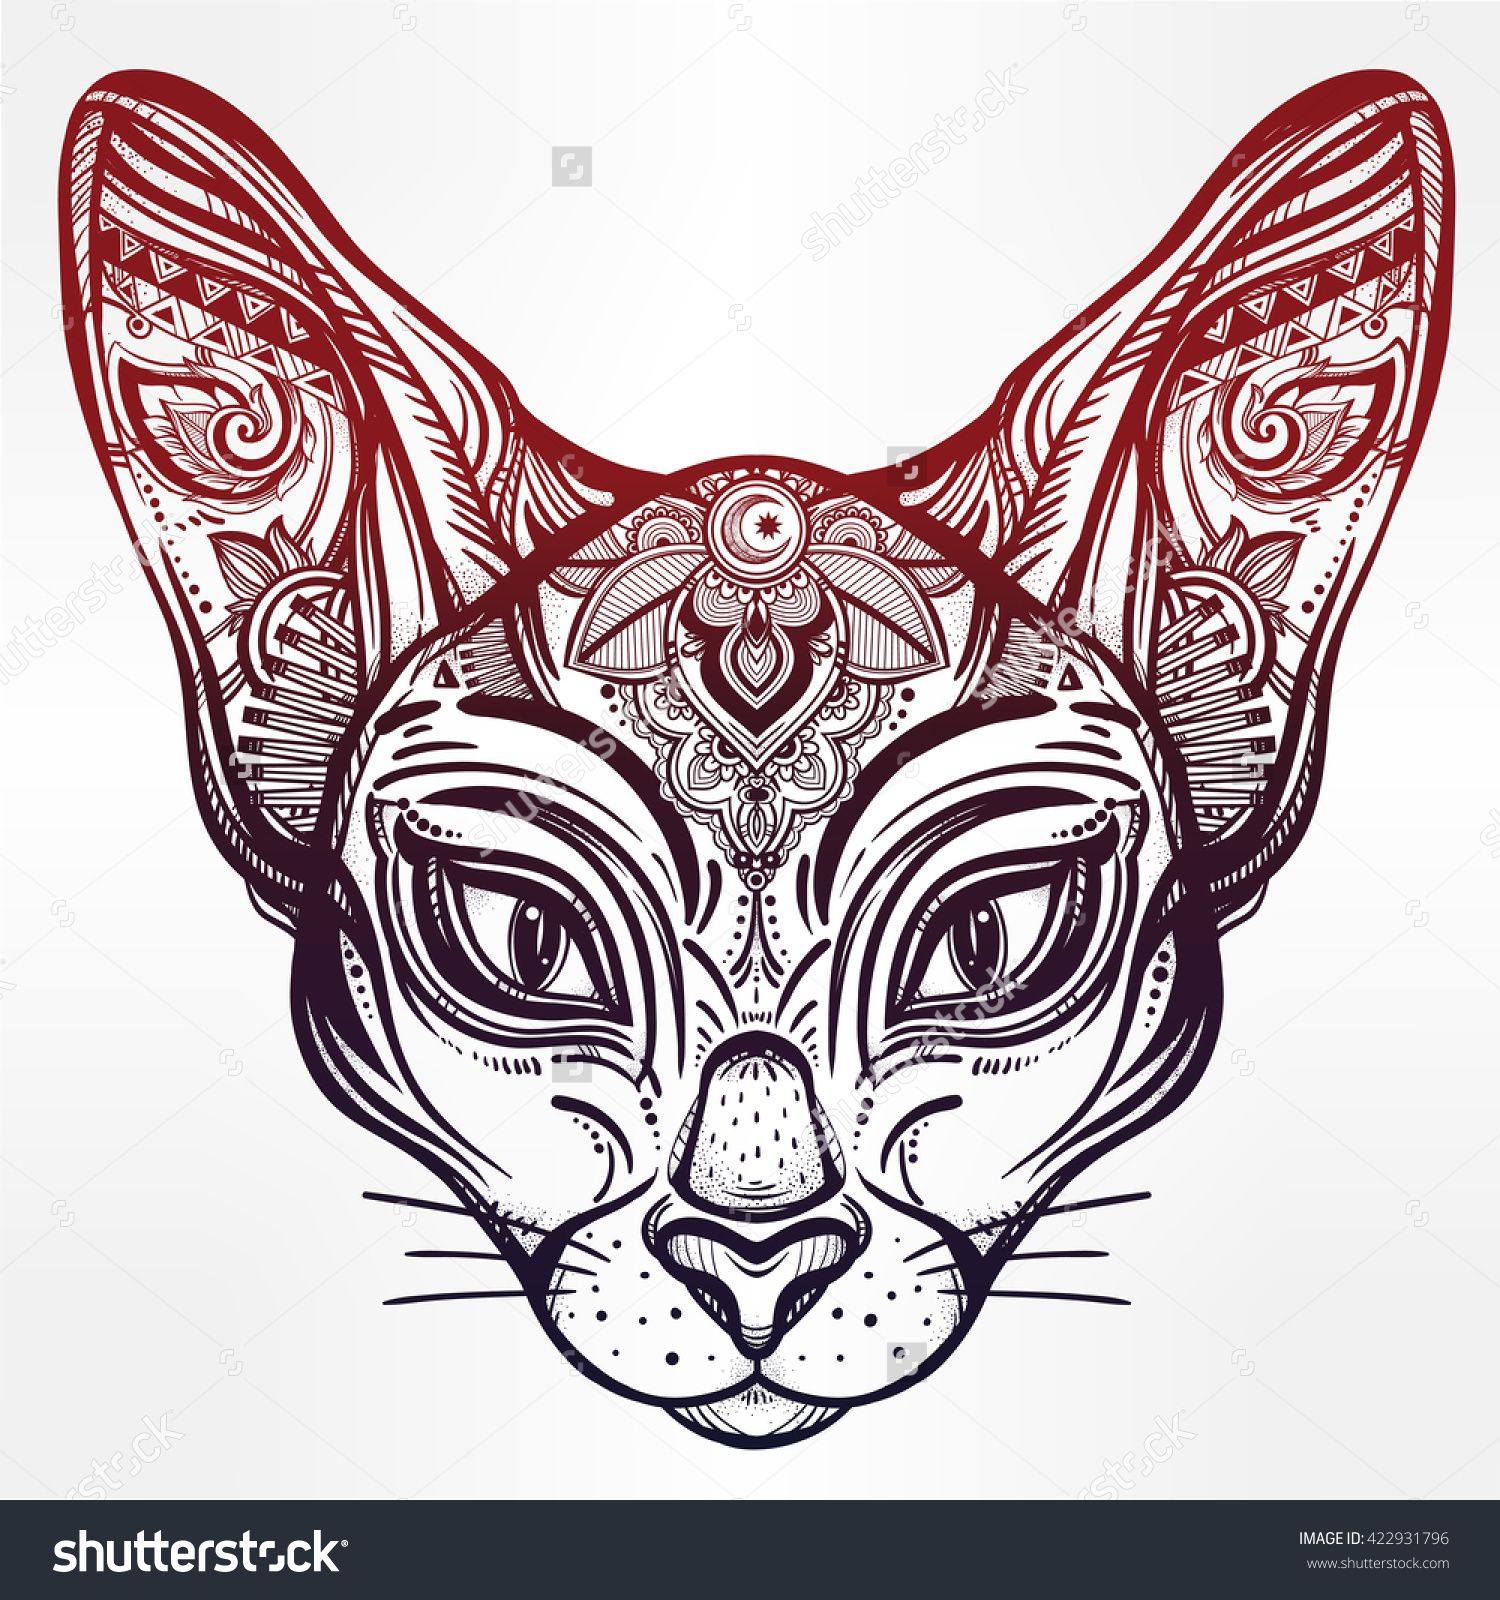 Design your t-shirt egypt - Vintage Ornate Cat Head With Tribal Ornaments Ideal Ethnic Background Tattoo Art Egyptian